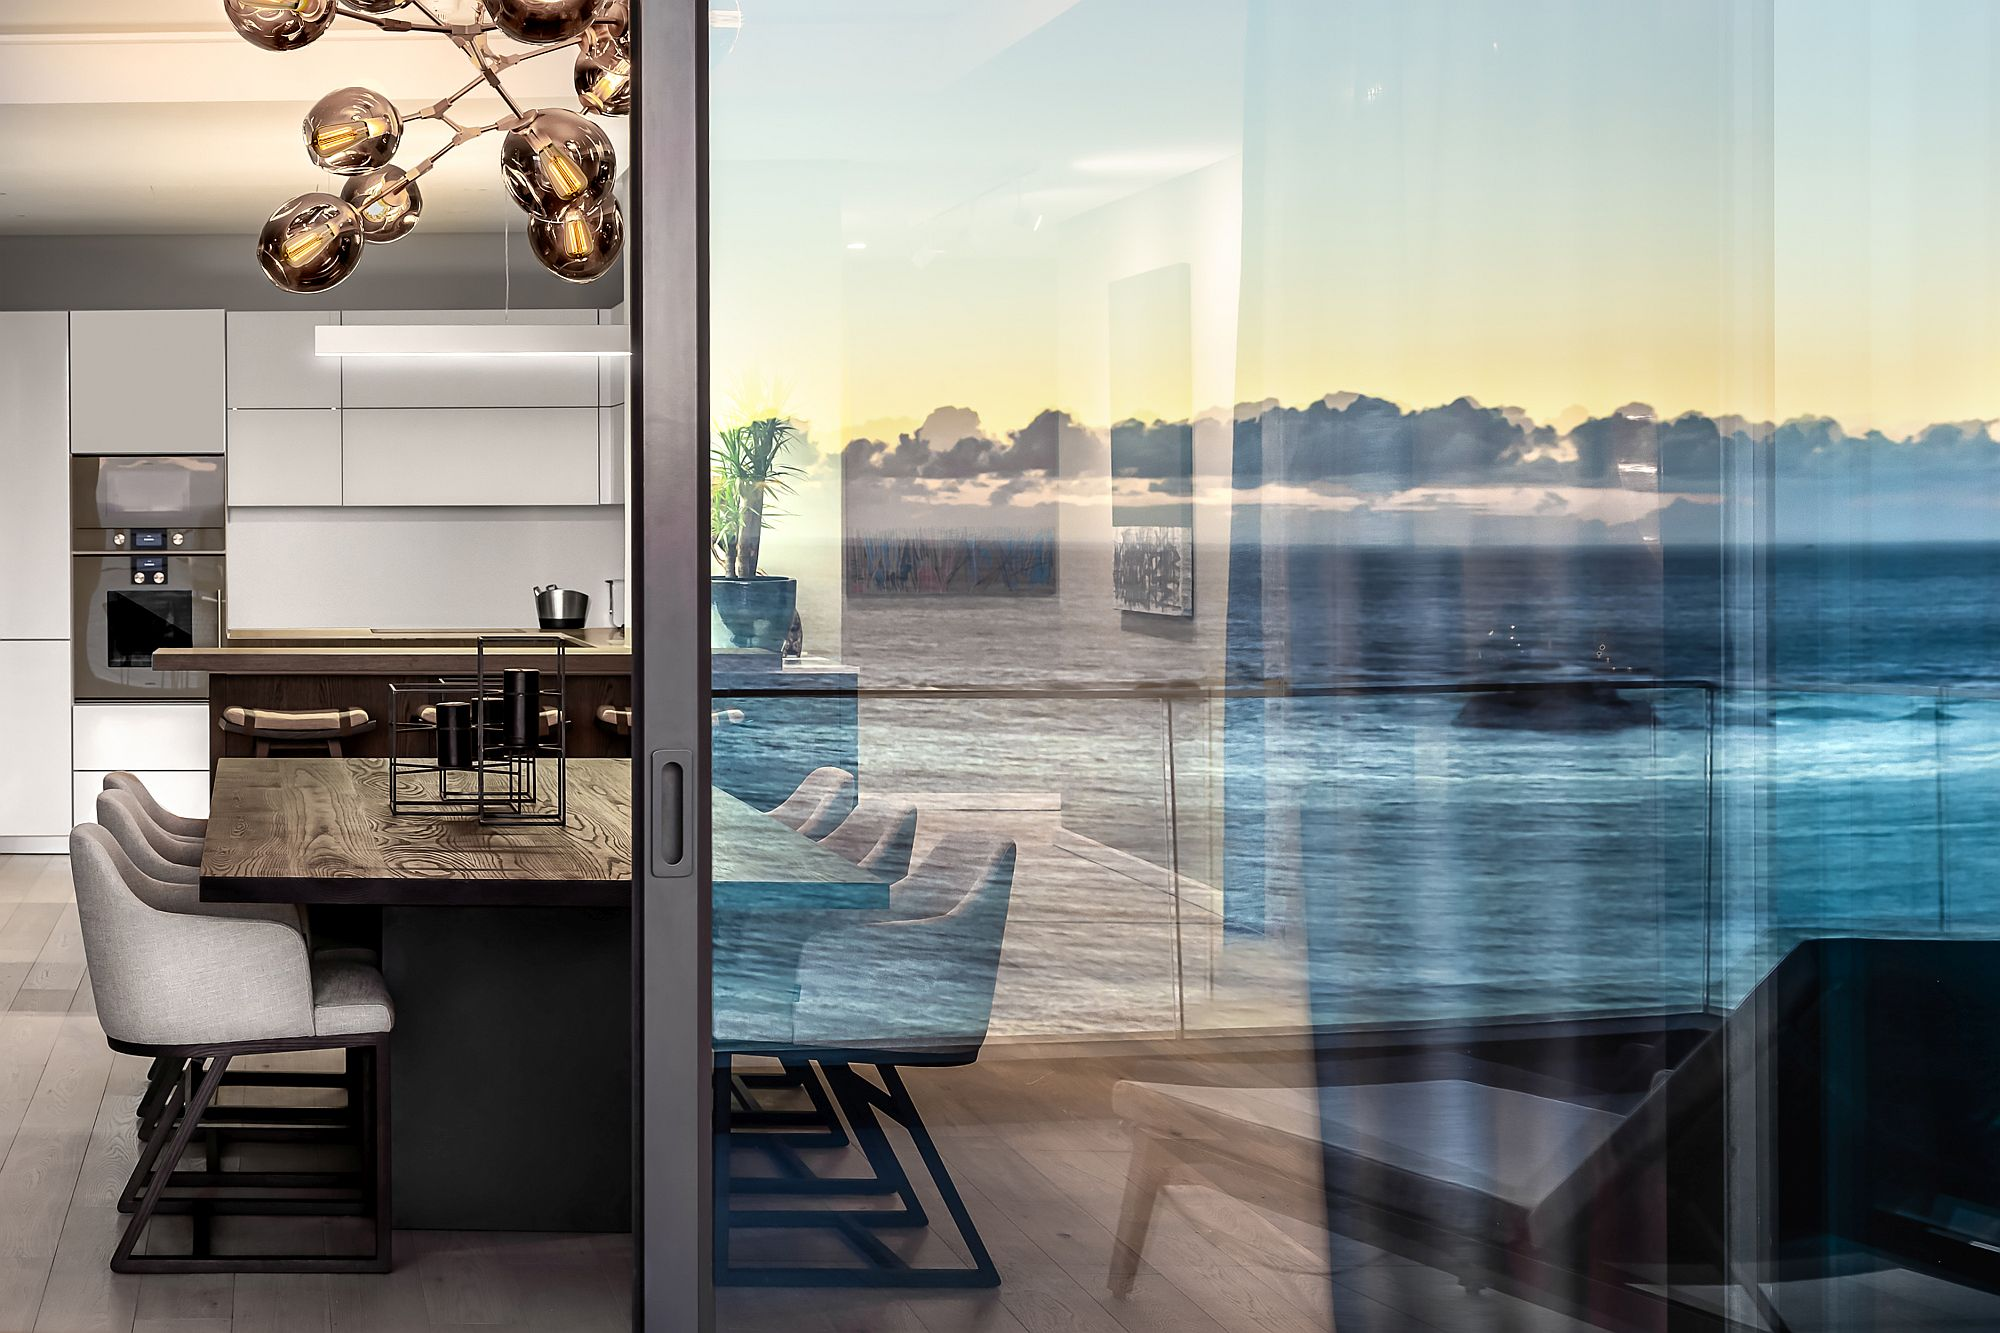 Sliding-glass-doors-delineate-the-dining-space-from-the-balcony